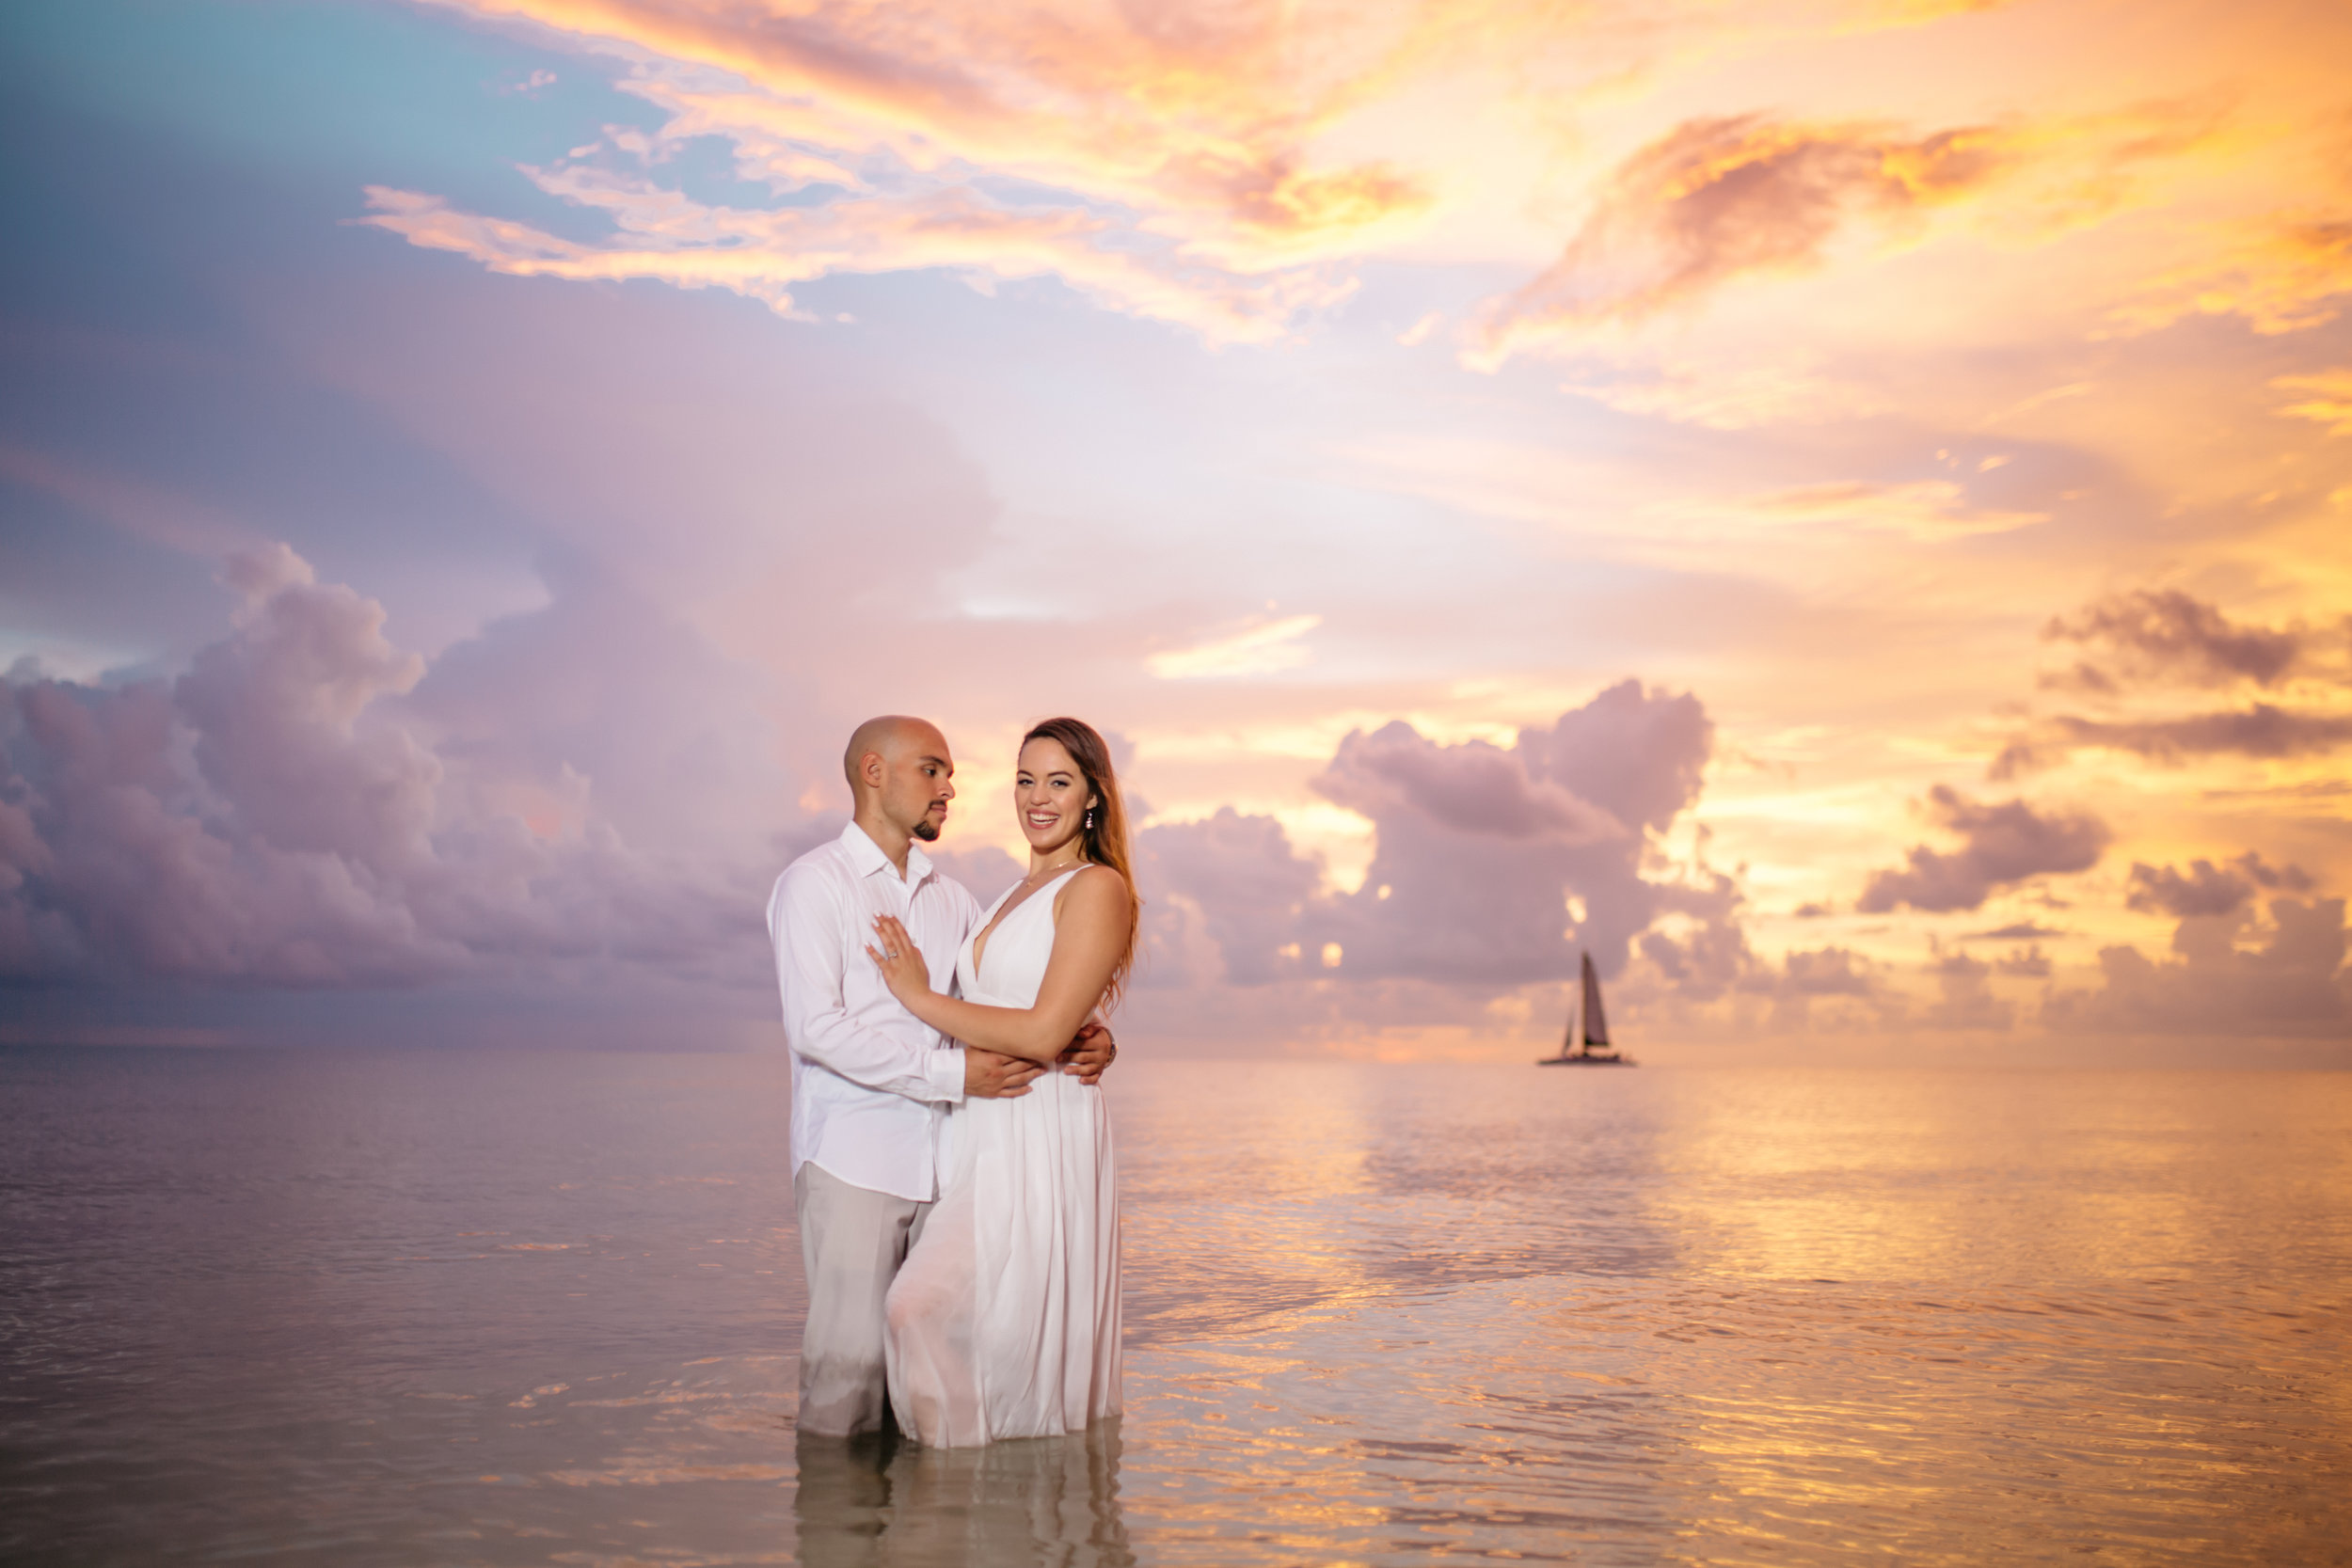 Follow my Columns! - Beach weddings are VERY popular here in Florida! Get helpful wedding day tips by following my columns through our very own Tampa Bay Times - Florida Beach Insider, so you can get the photographers perspective on important factors such as lighting, shadows, weather and sunsets!